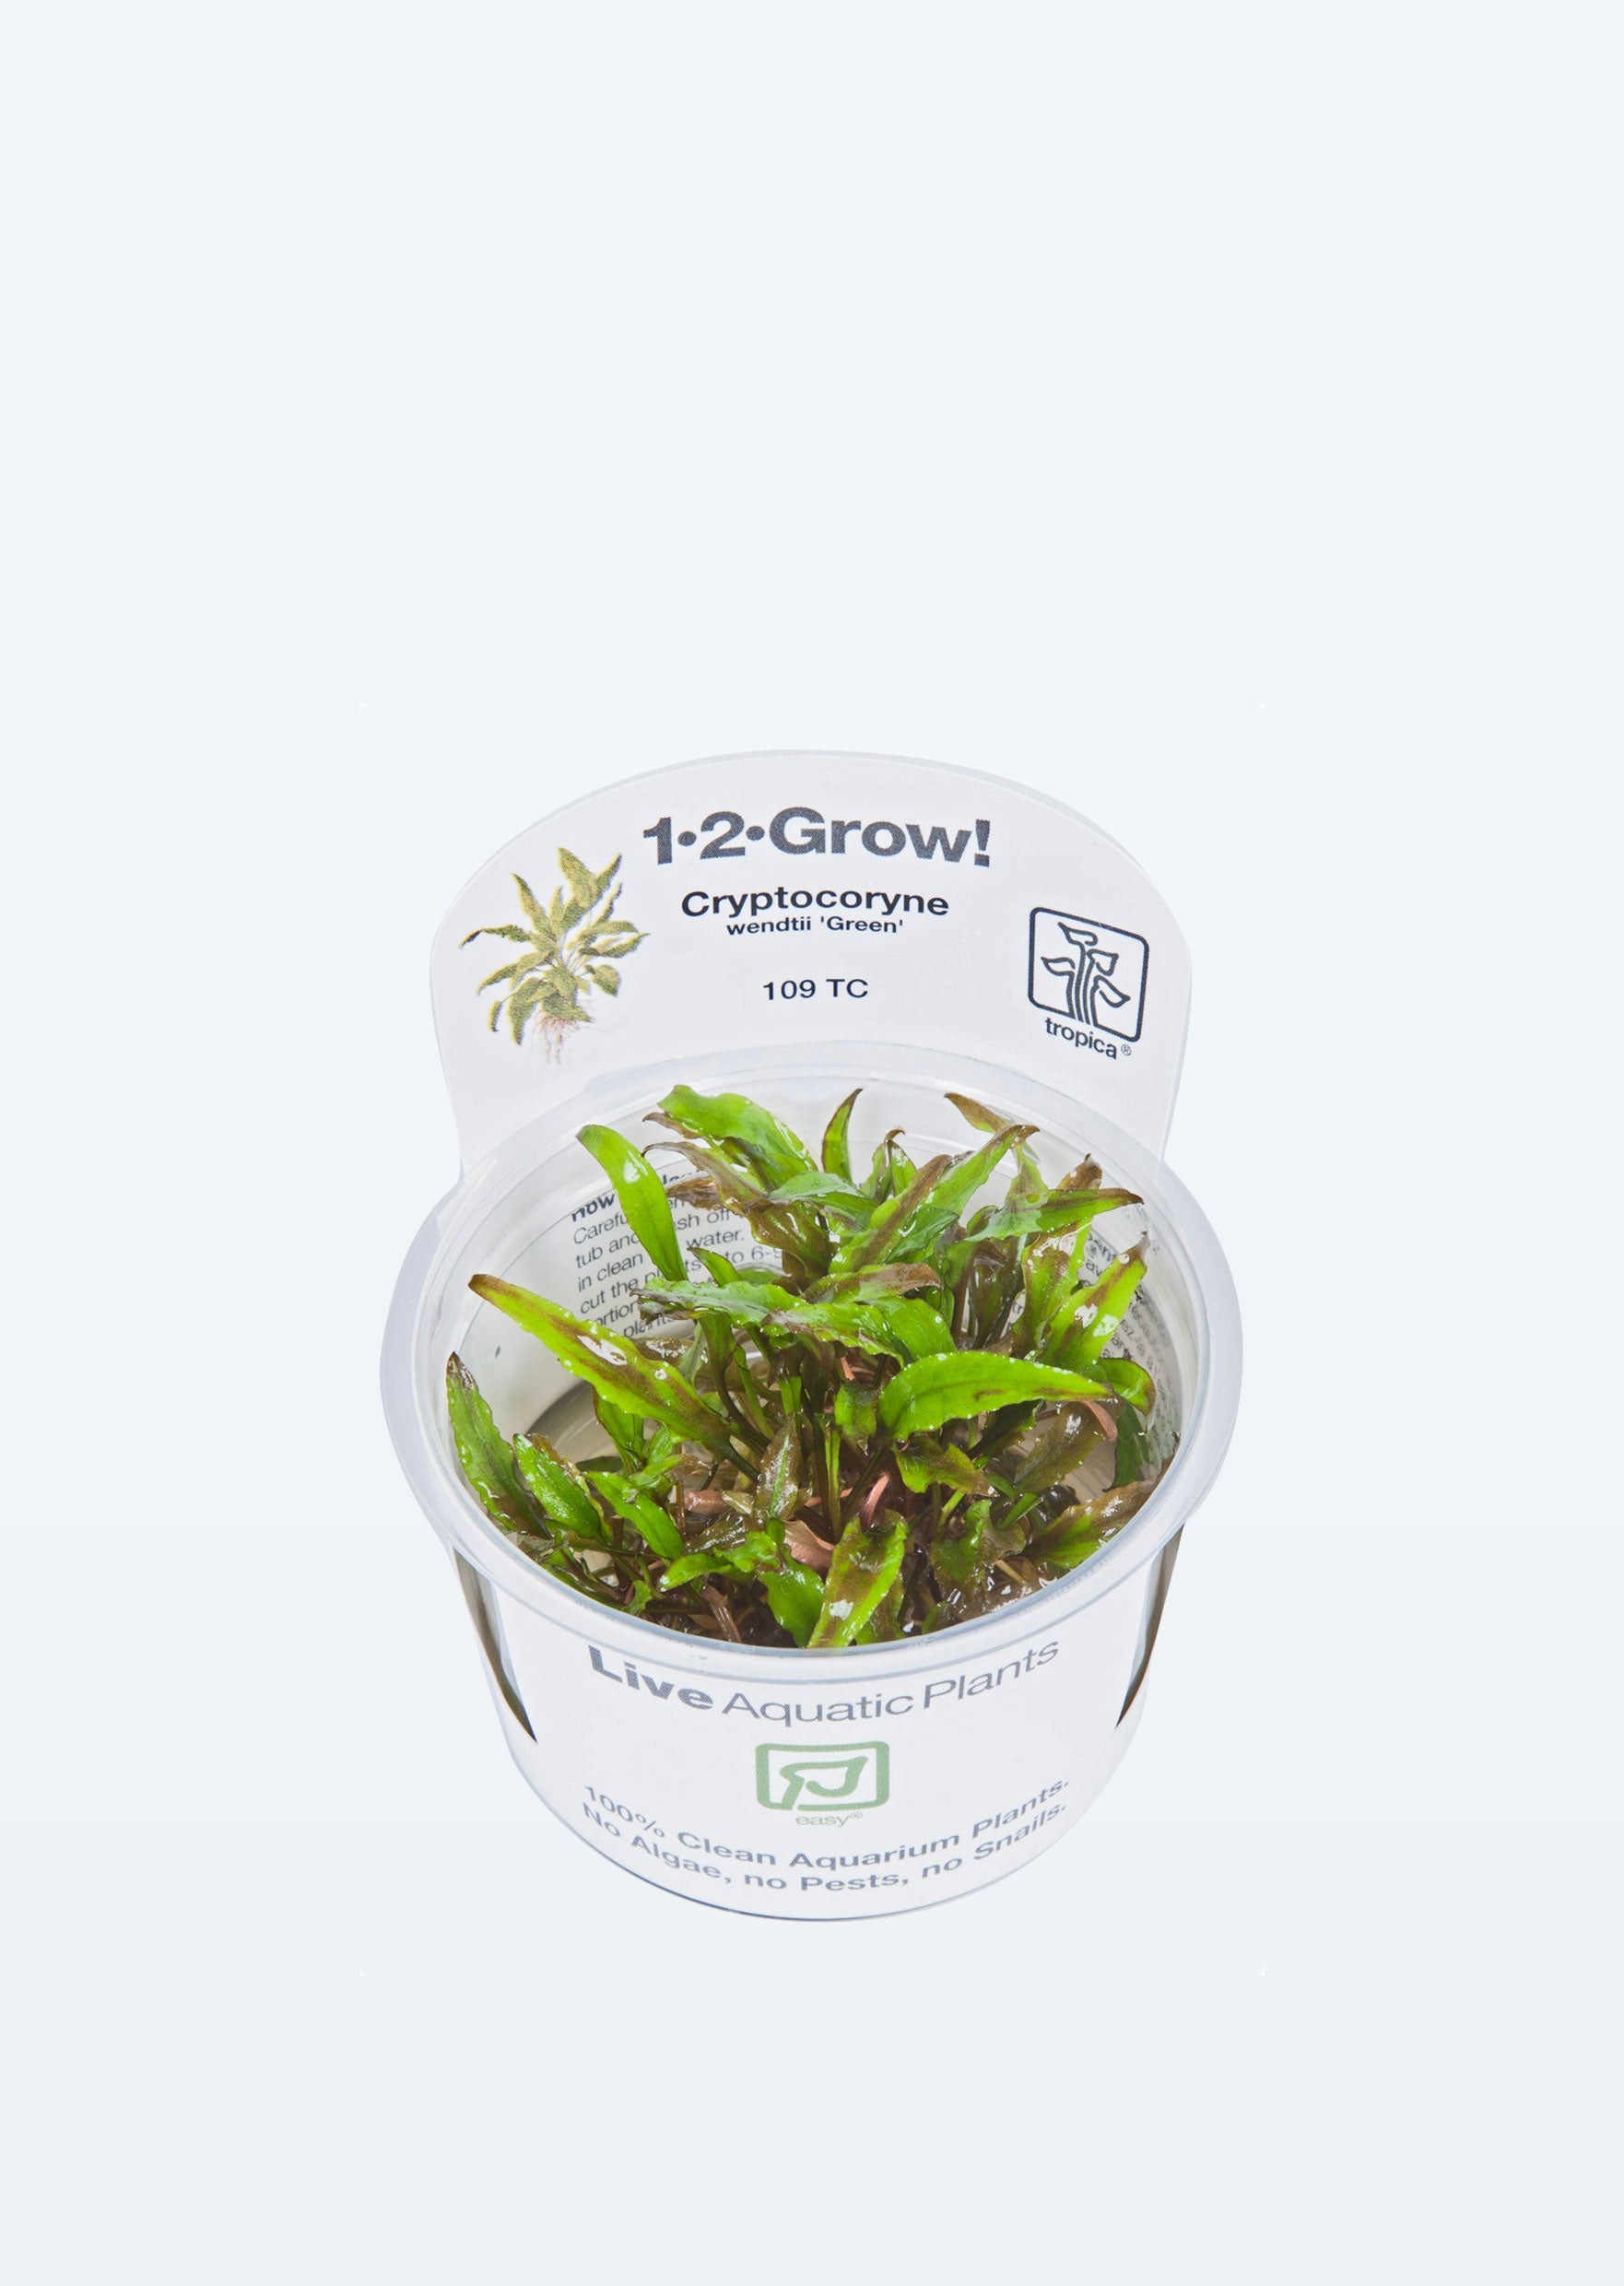 1-2-Grow! Cryptocoryne wendtii 'Green'